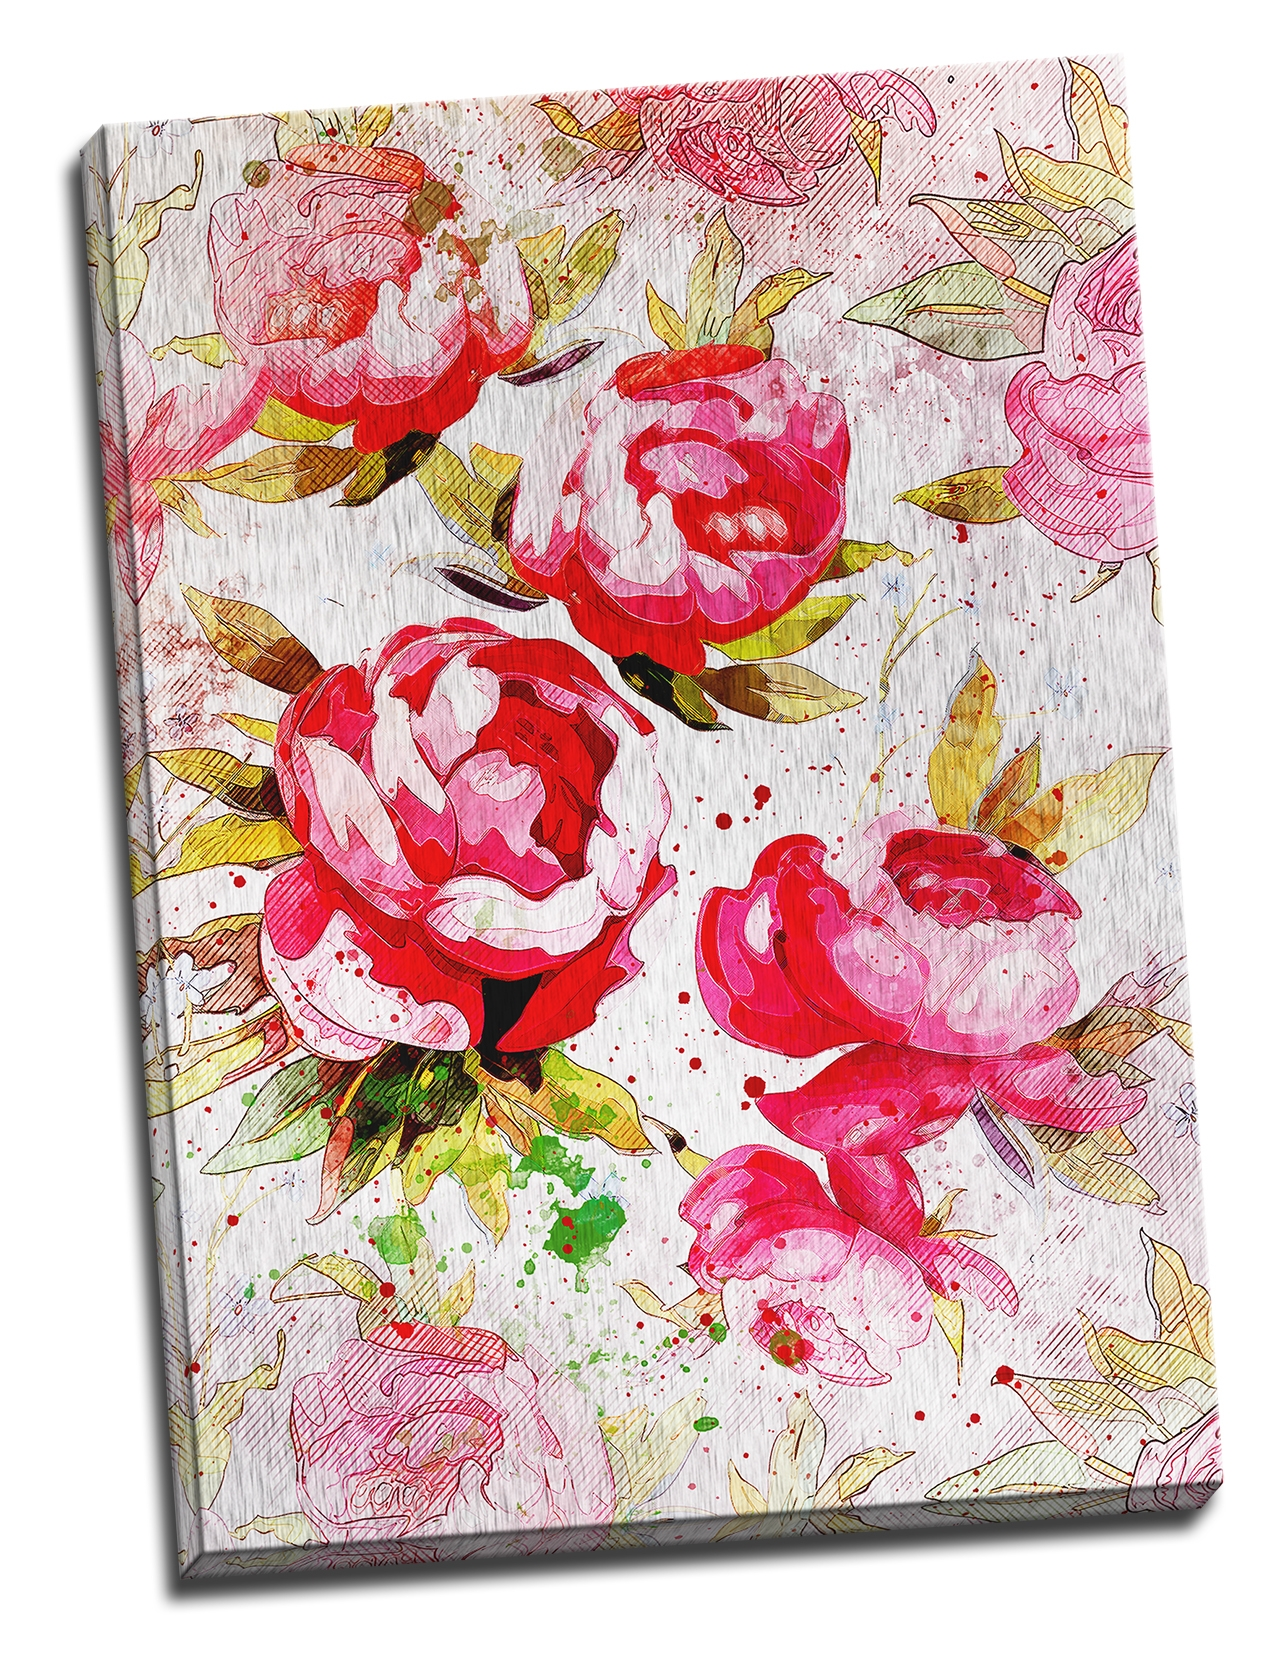 Tablou din aluminiu striat English Roses